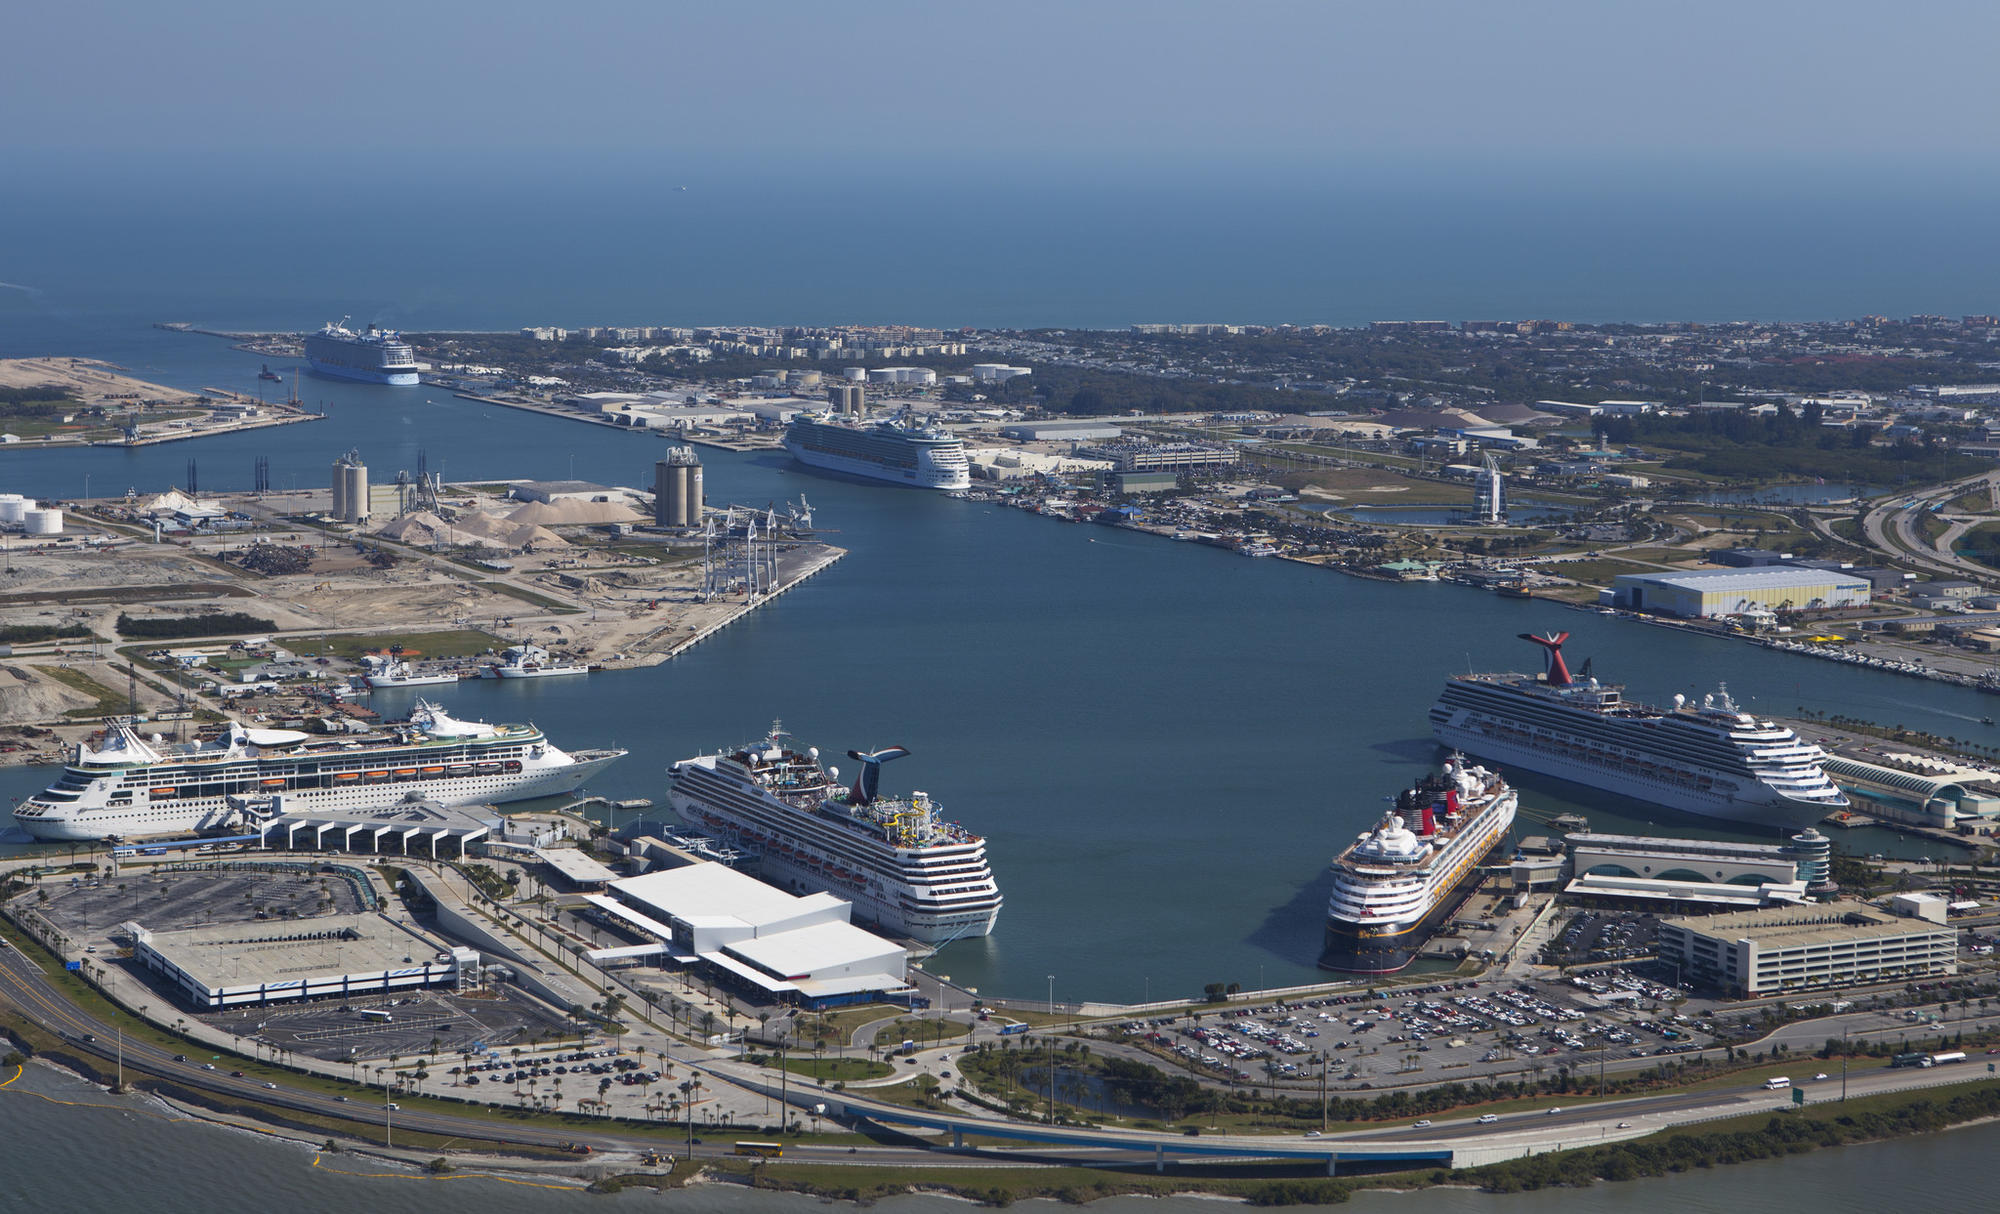 Port Canaveral S 30 Year Plan Calls For Three New Cruise Terminals Orlando Sentinel